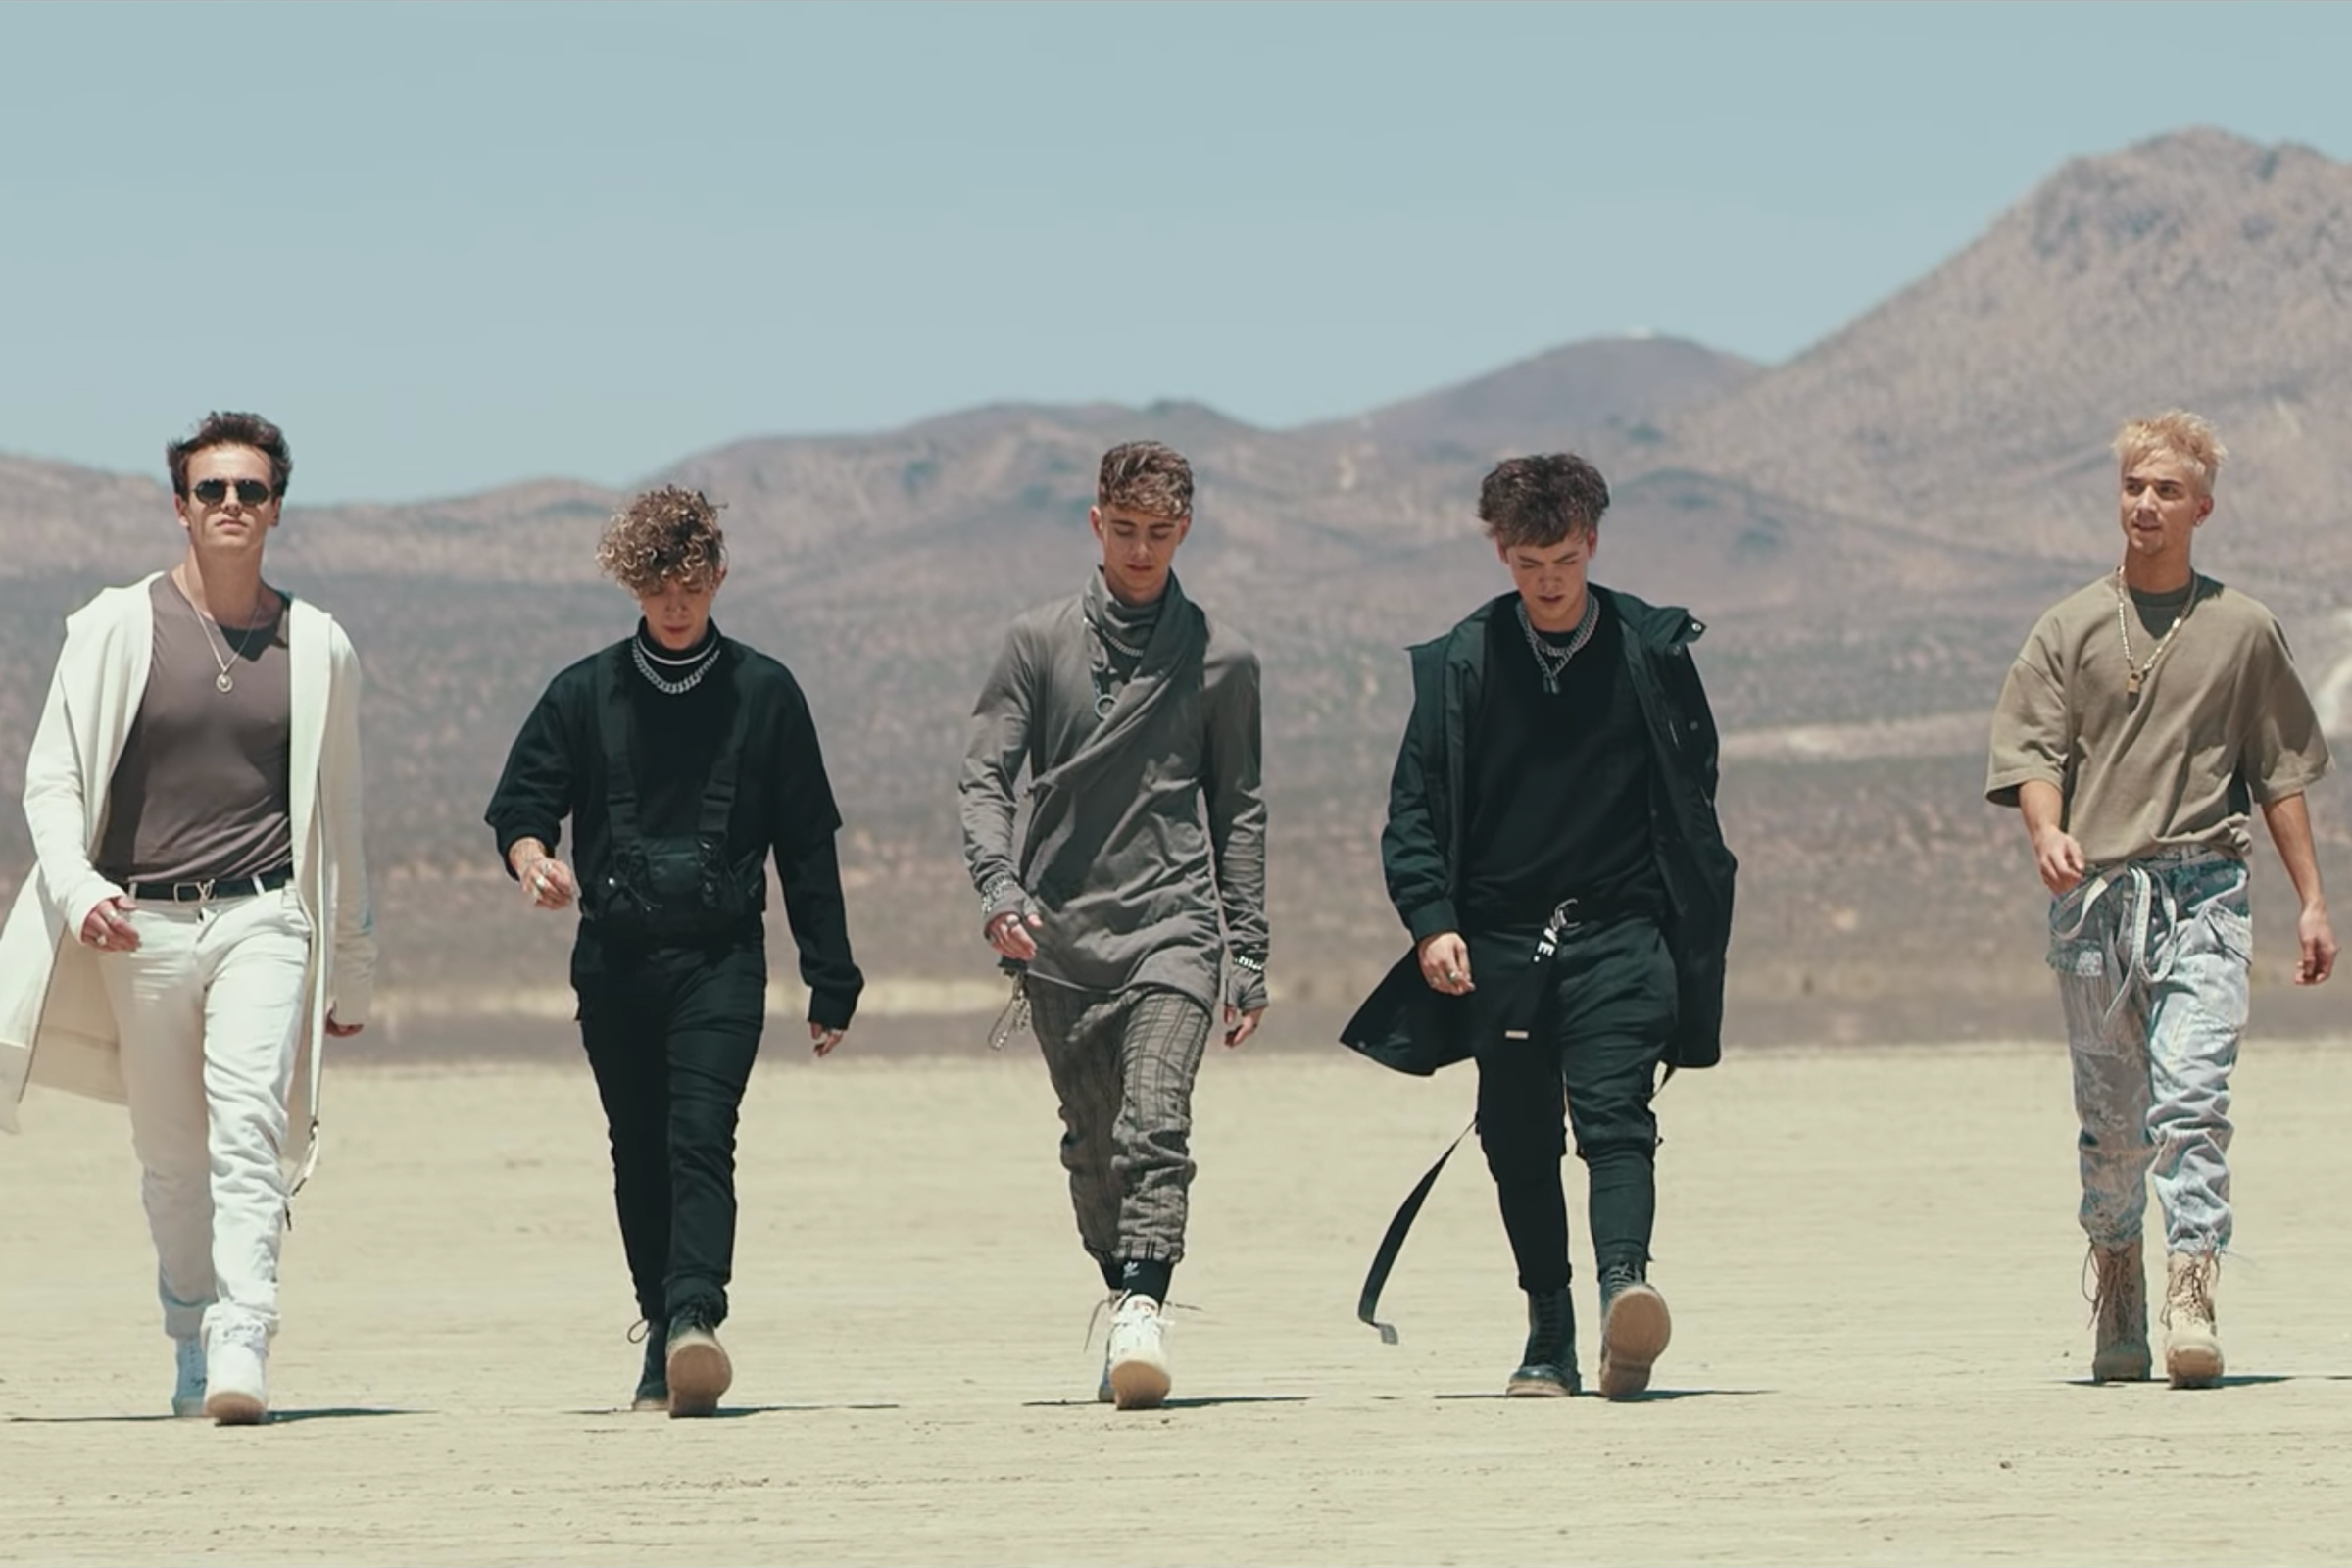 Watch Why Don't We Bring Life to the Desert in ...